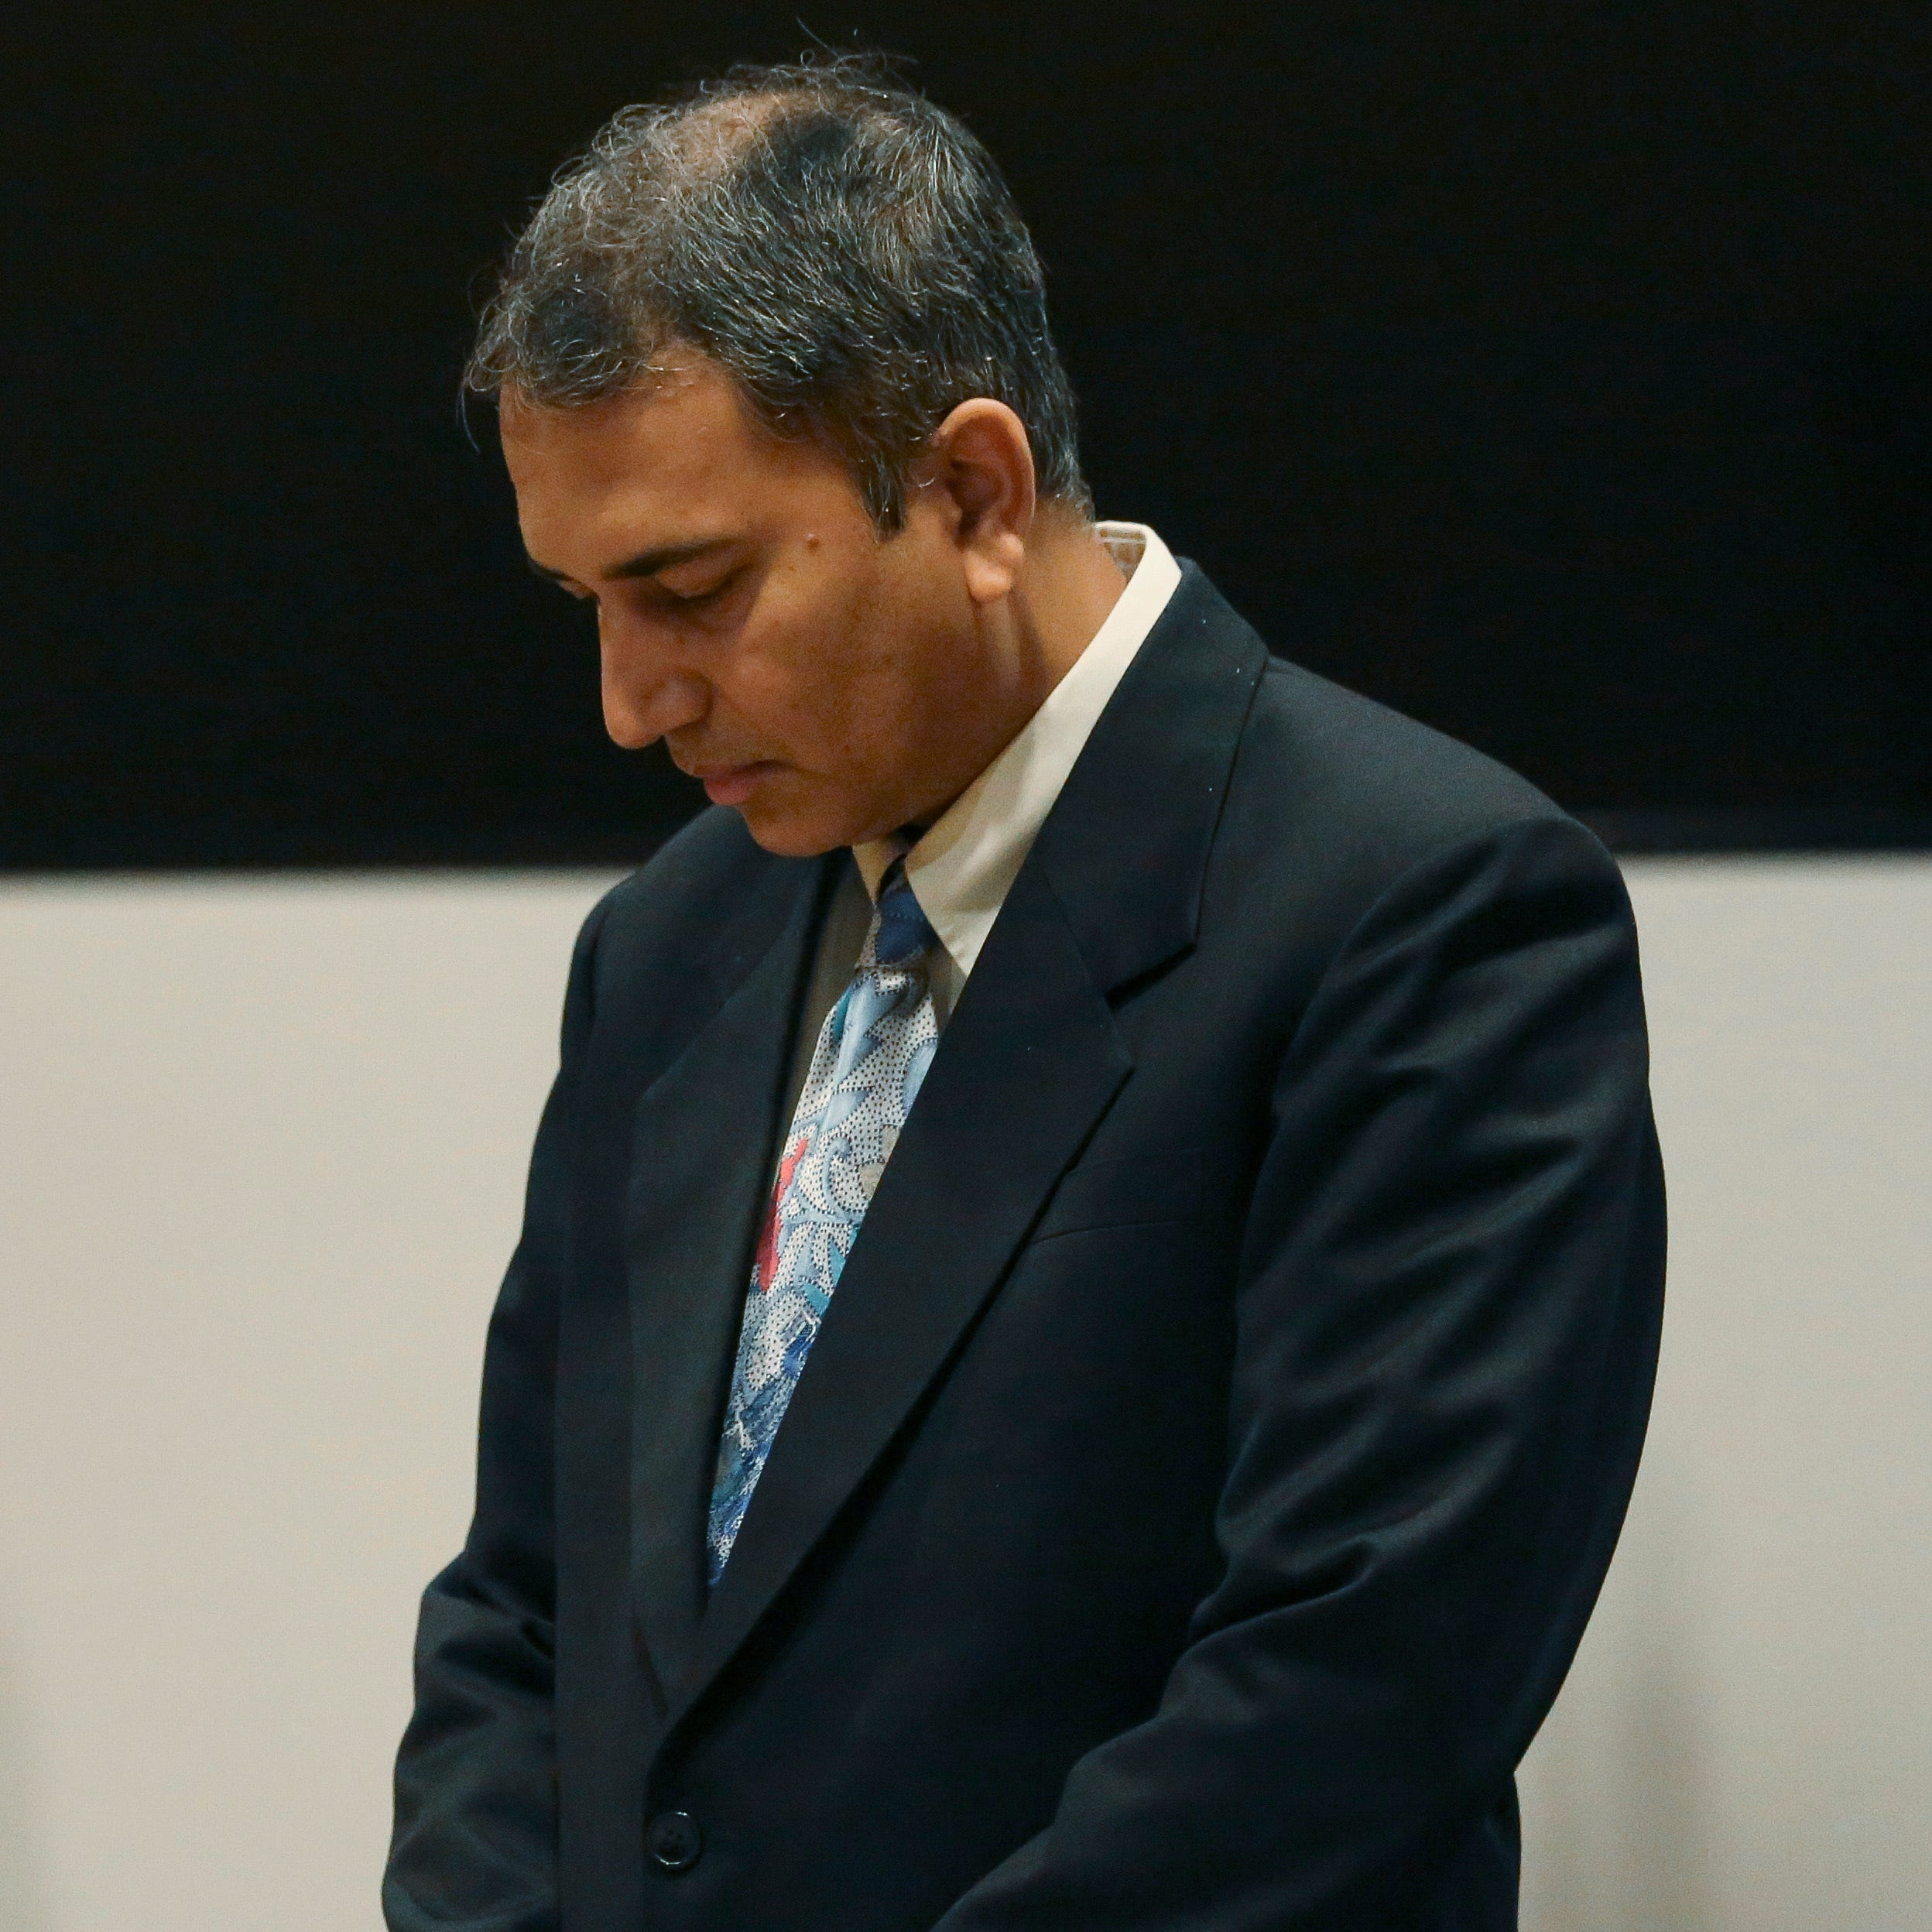 Former doctor who raped heavily sedated patient will serve no prison time